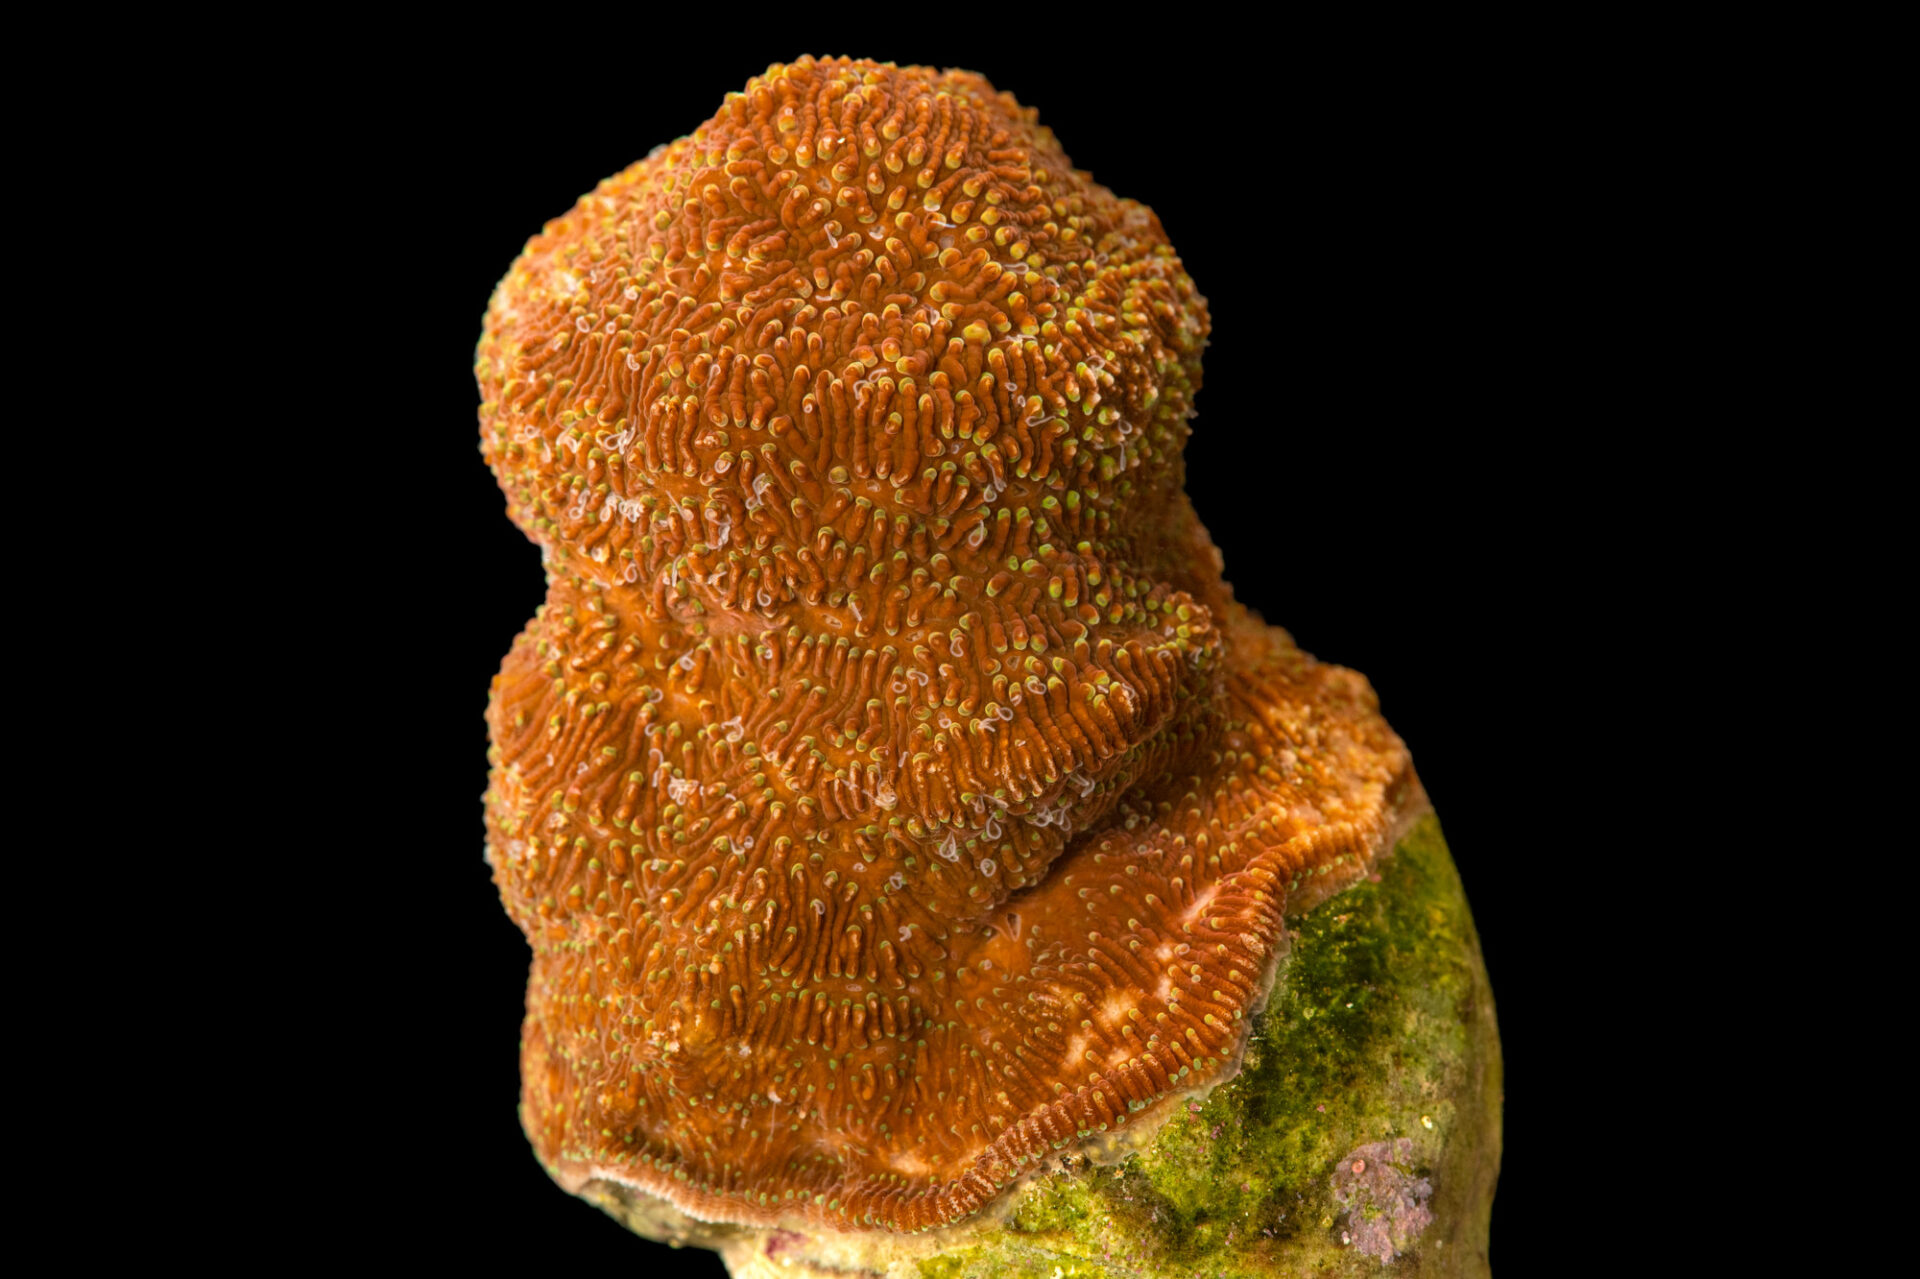 Photo: Pavona coral (Pavona decussata) from a private collection in Saint Louis.